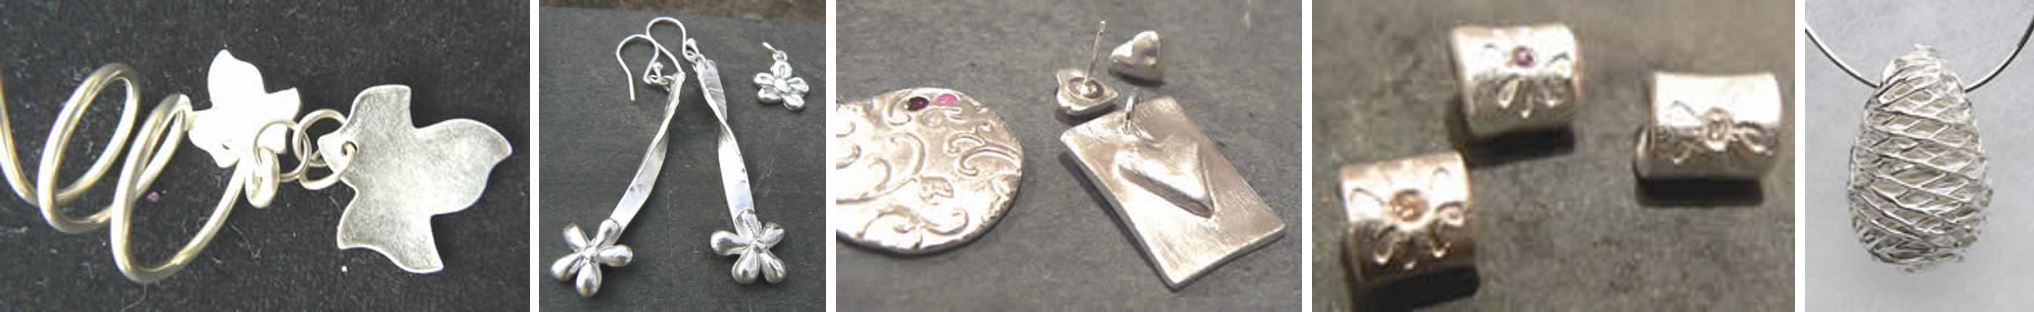 Silver Clay Workshops in Cumbria